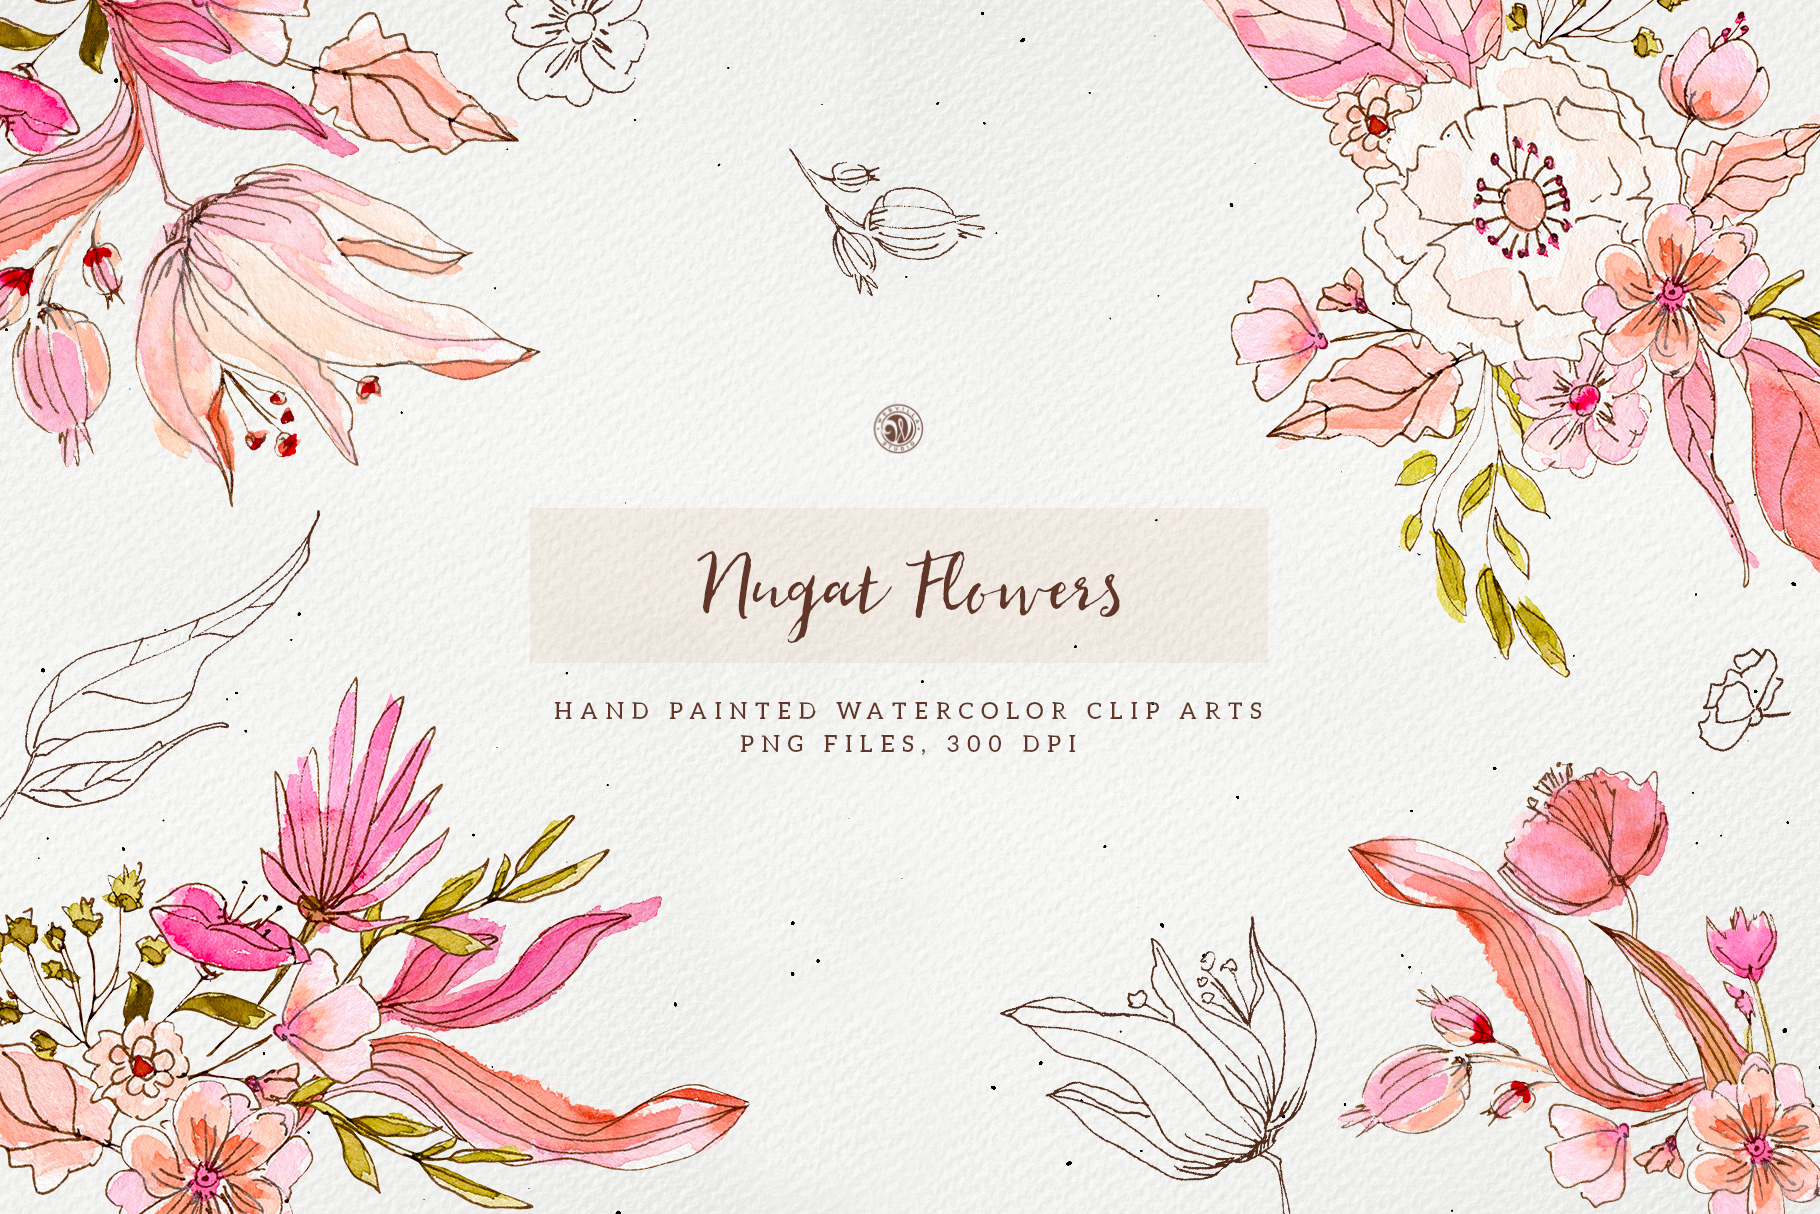 Nugat Flowers - Price $9